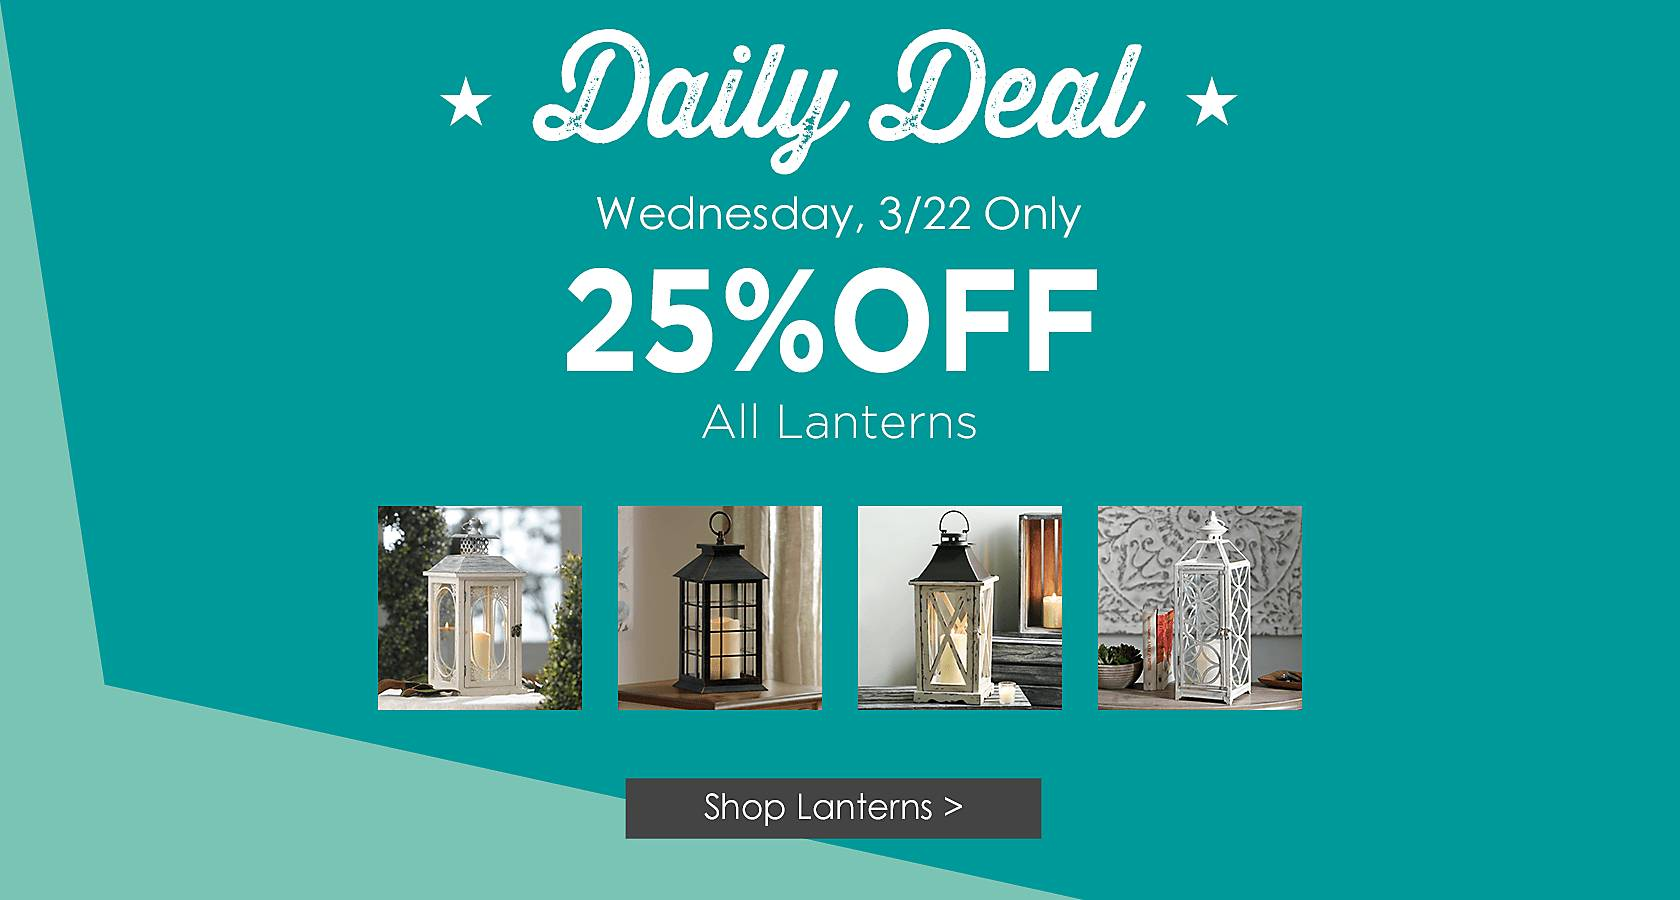 Daily Deal, Wednesday Only - 25% Off All Lanterns - Shop Now